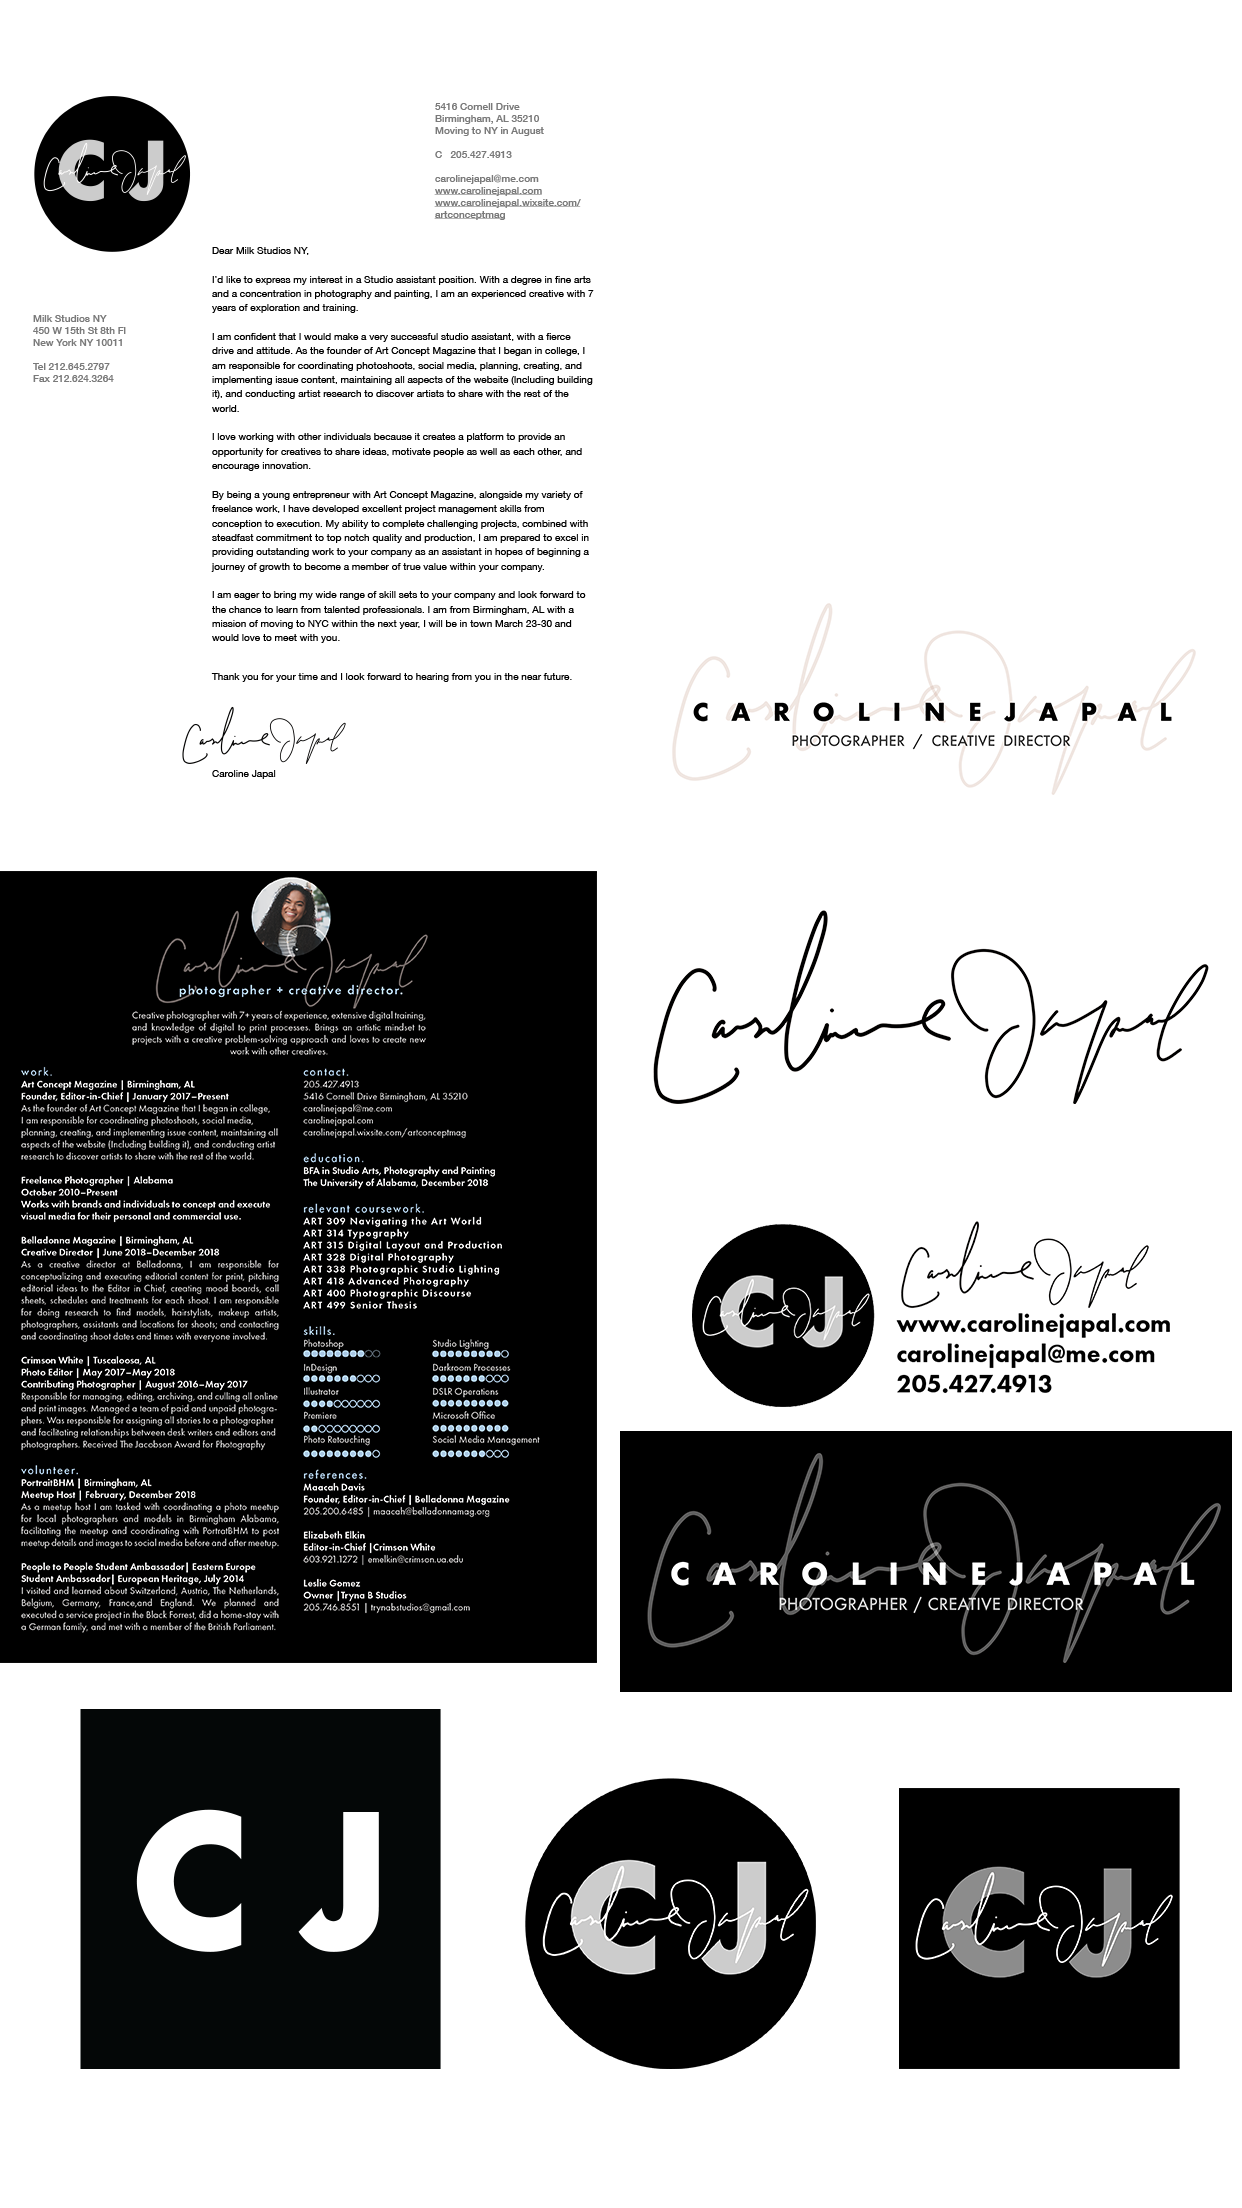 Logo and Assets for Caroline Japal Branding - Created a logo, watermark, and page header that can be added to documents, websites, forms and other types of business materials.